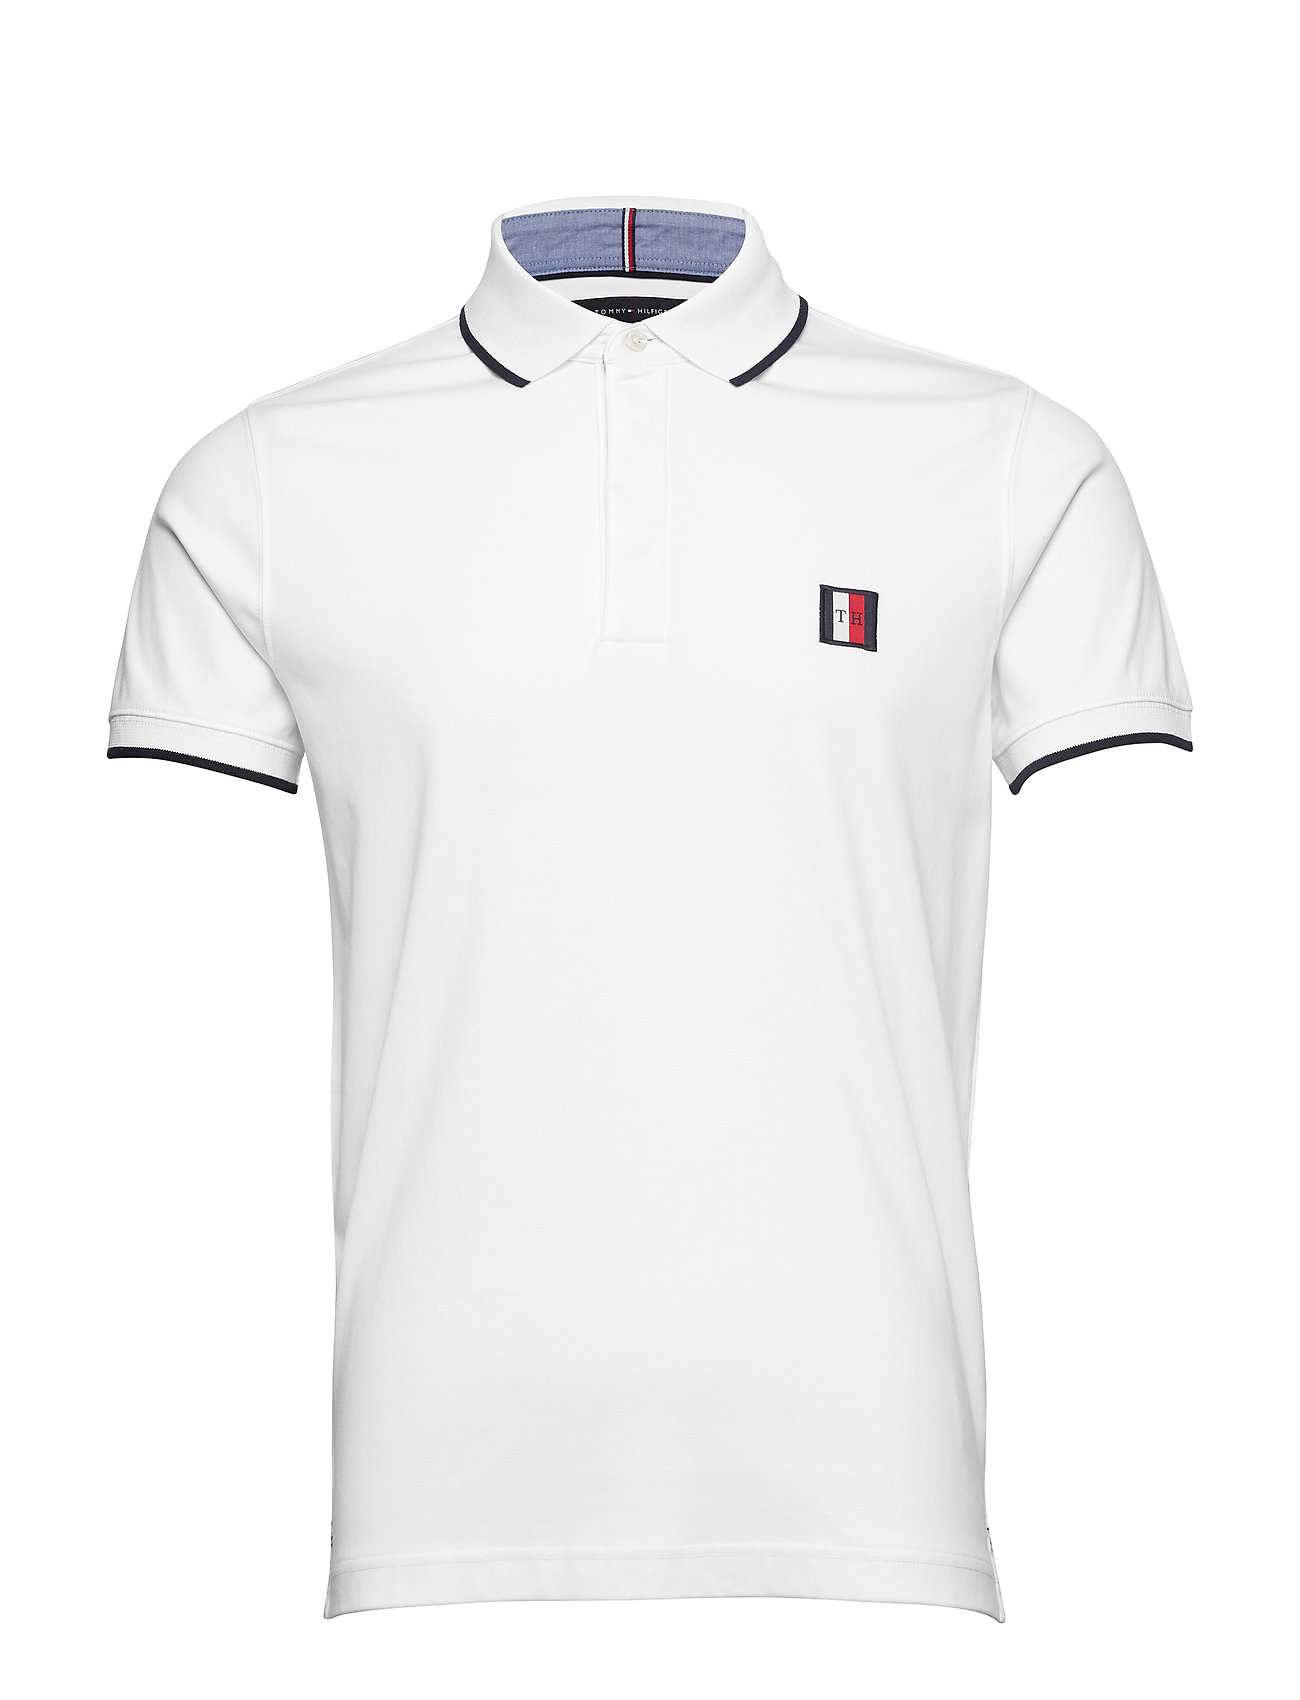 Tommy Hilfiger SOPHISTICATED JERSEY - BRIGHT WHITE